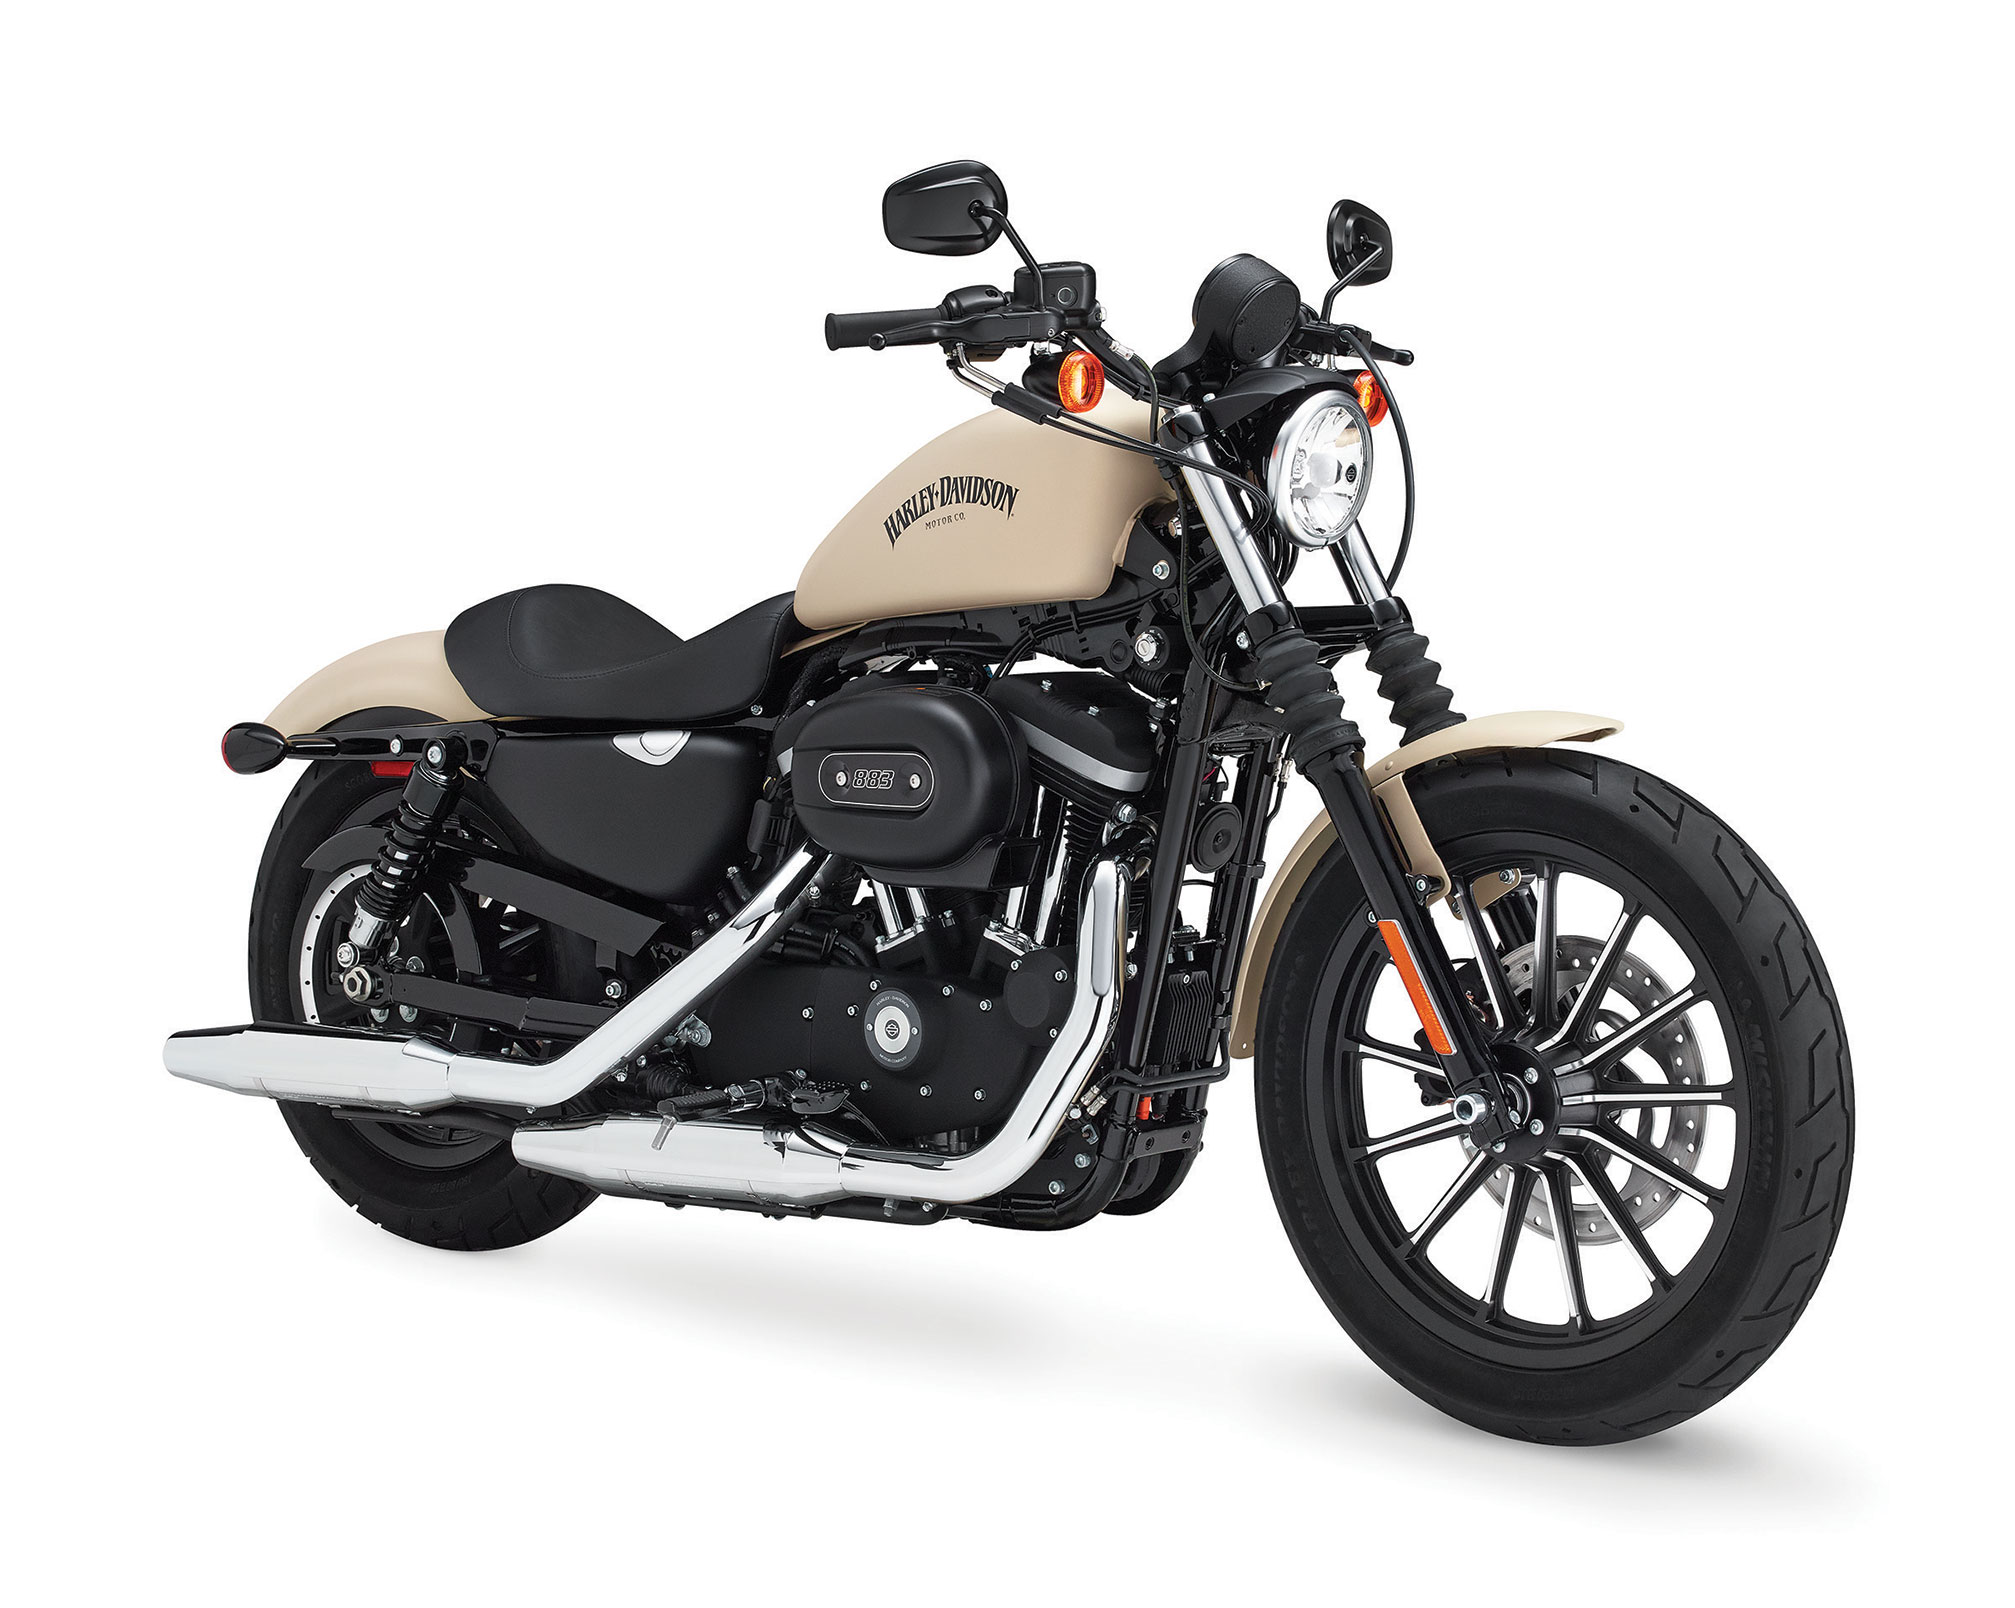 2015 harley davidson xl883n iron 883 review. Black Bedroom Furniture Sets. Home Design Ideas